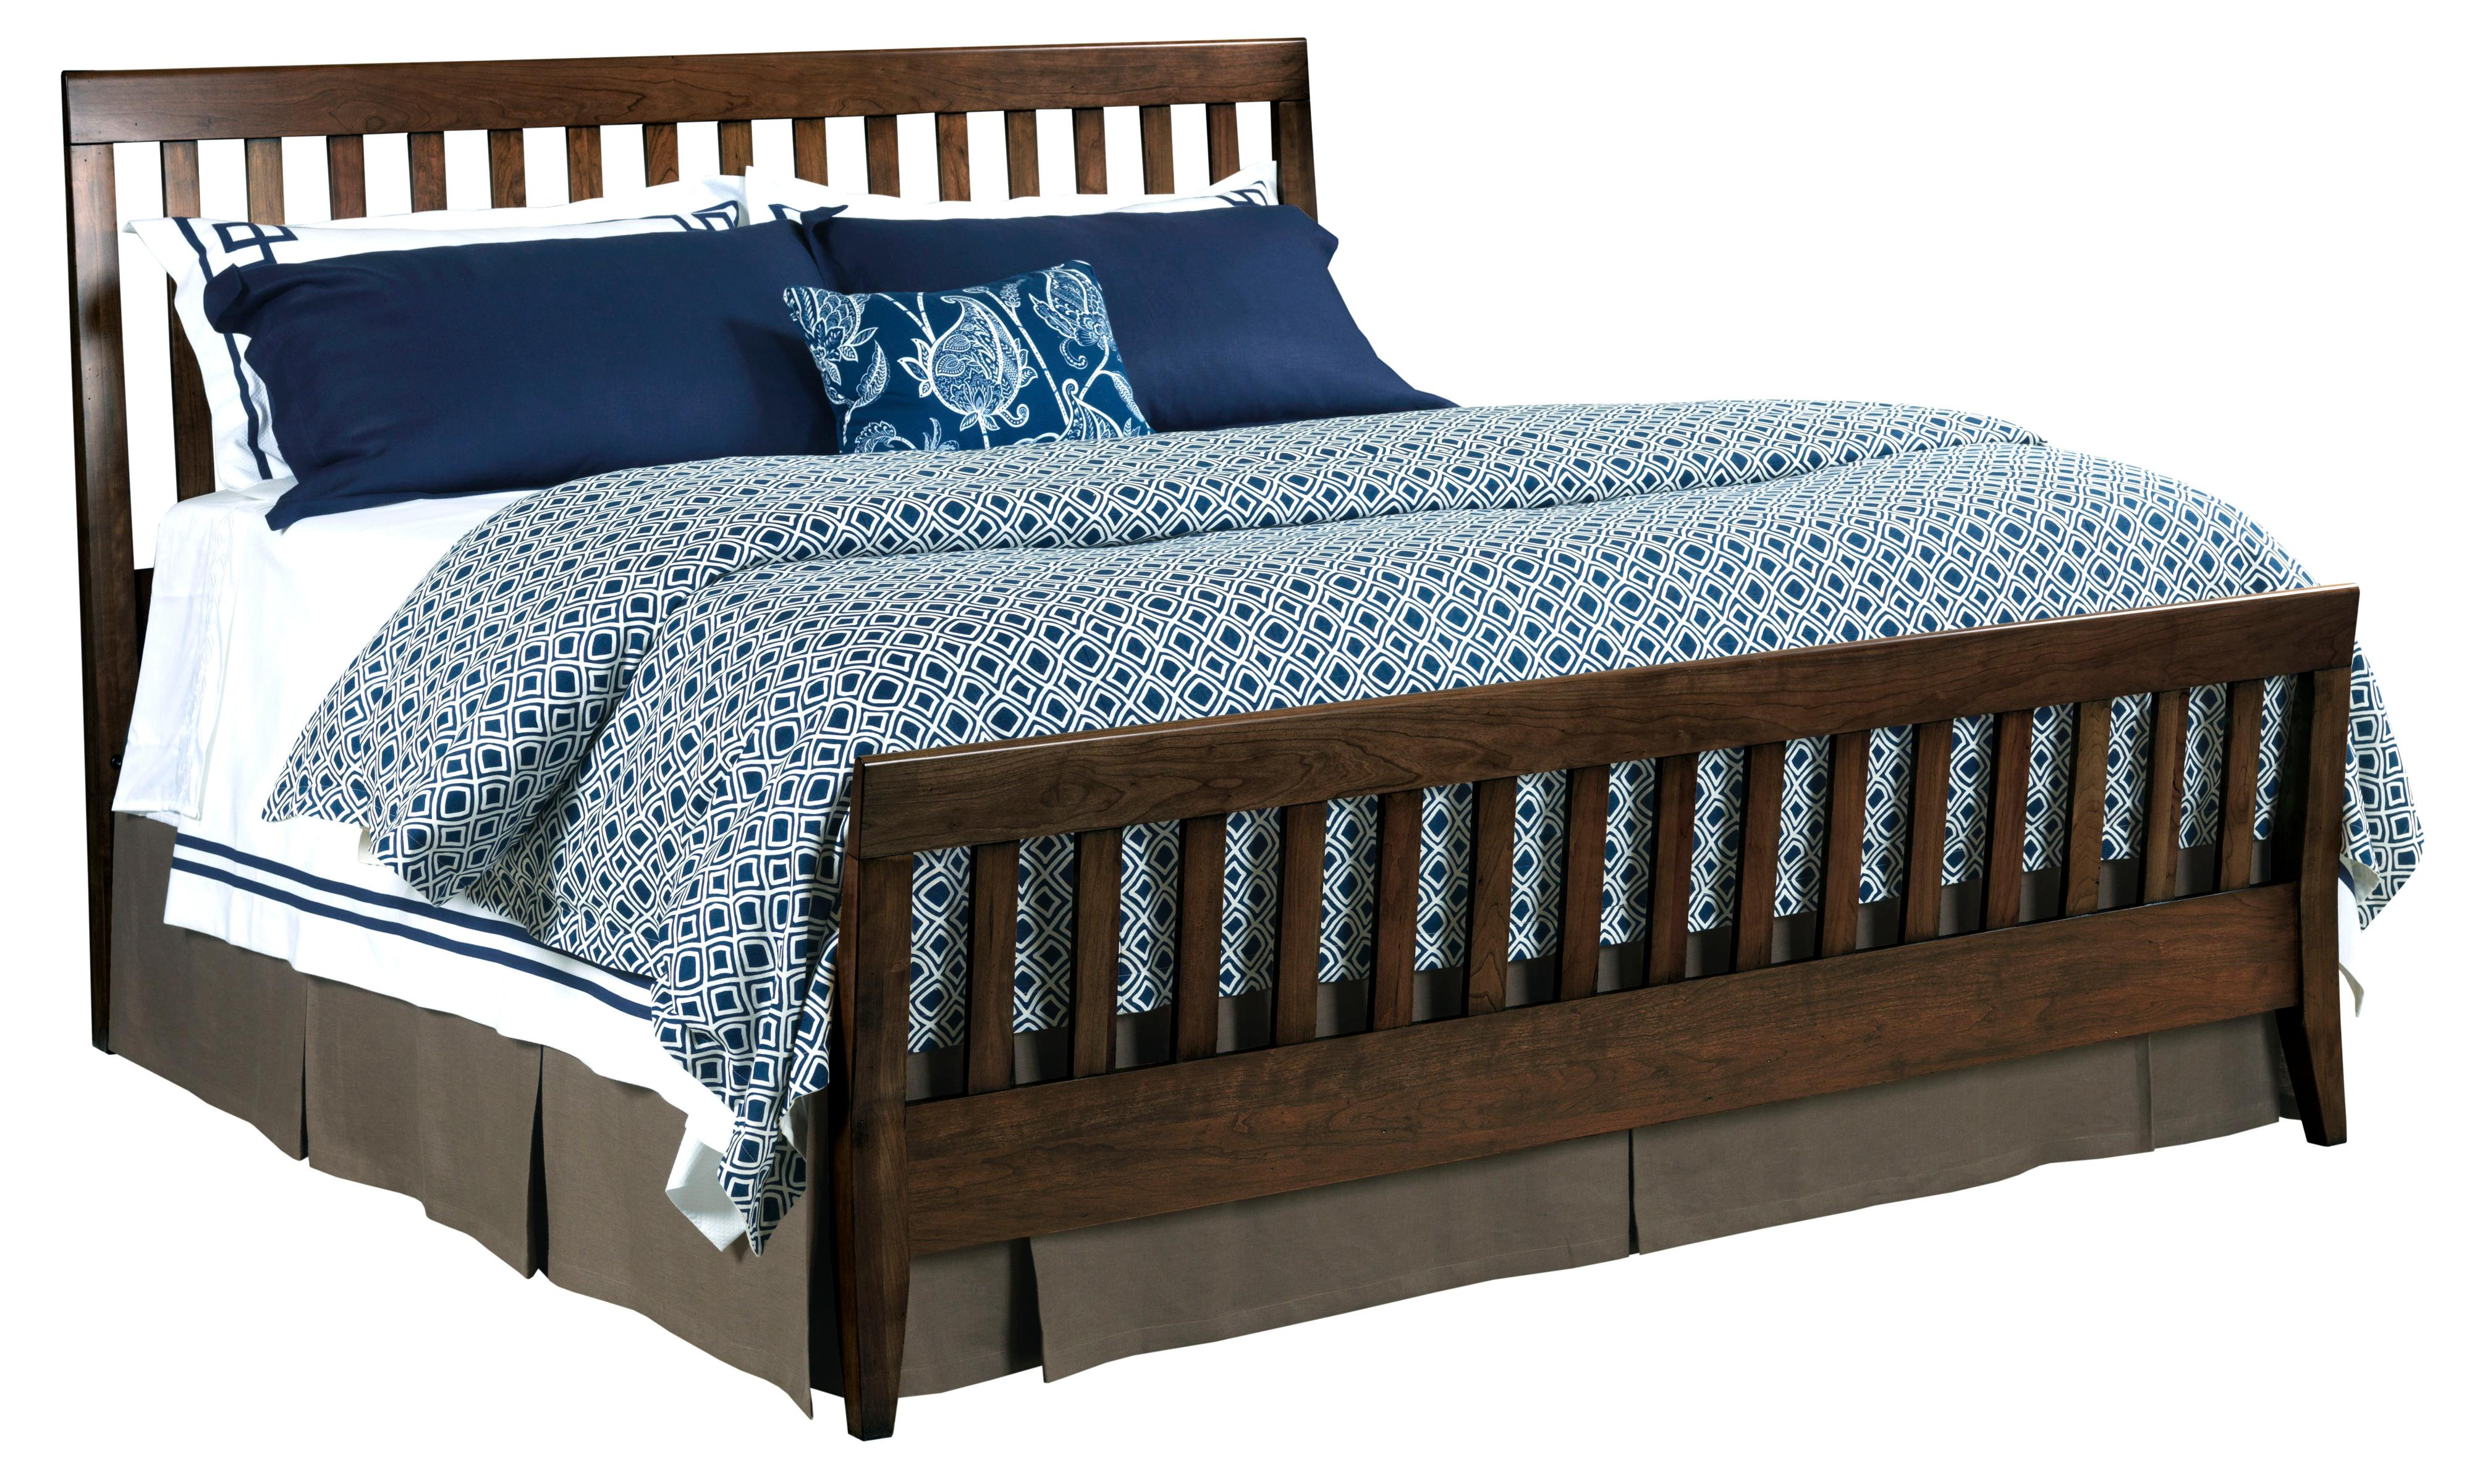 Kincaid Furniture Gatherings Queen Slat Bed - Item Number: 44-2730